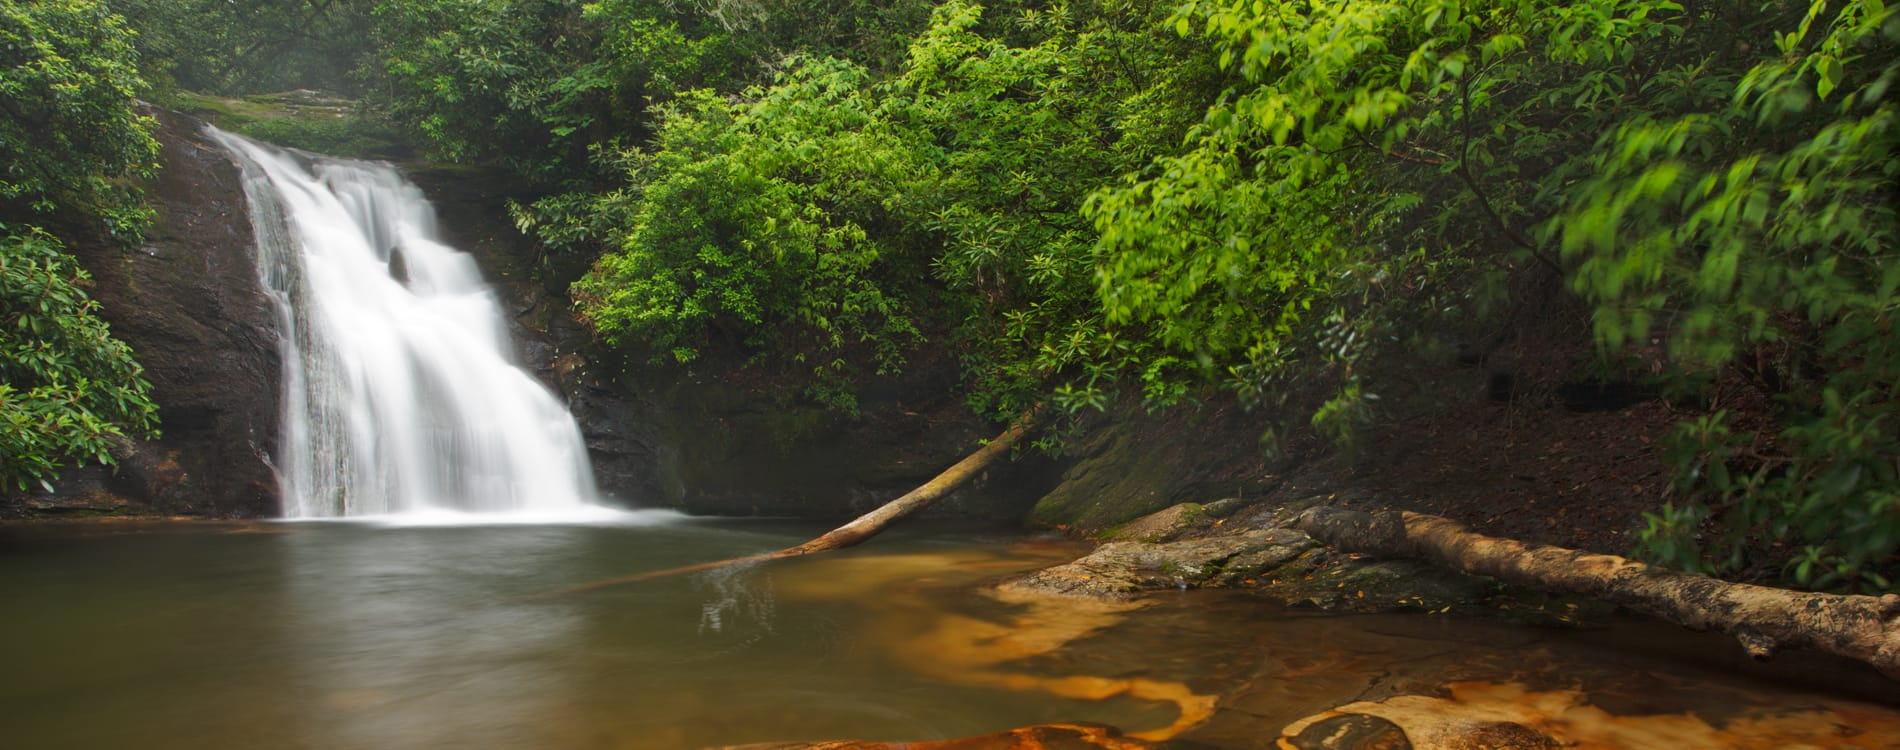 Helen, GA - Blue Hole Waterfall